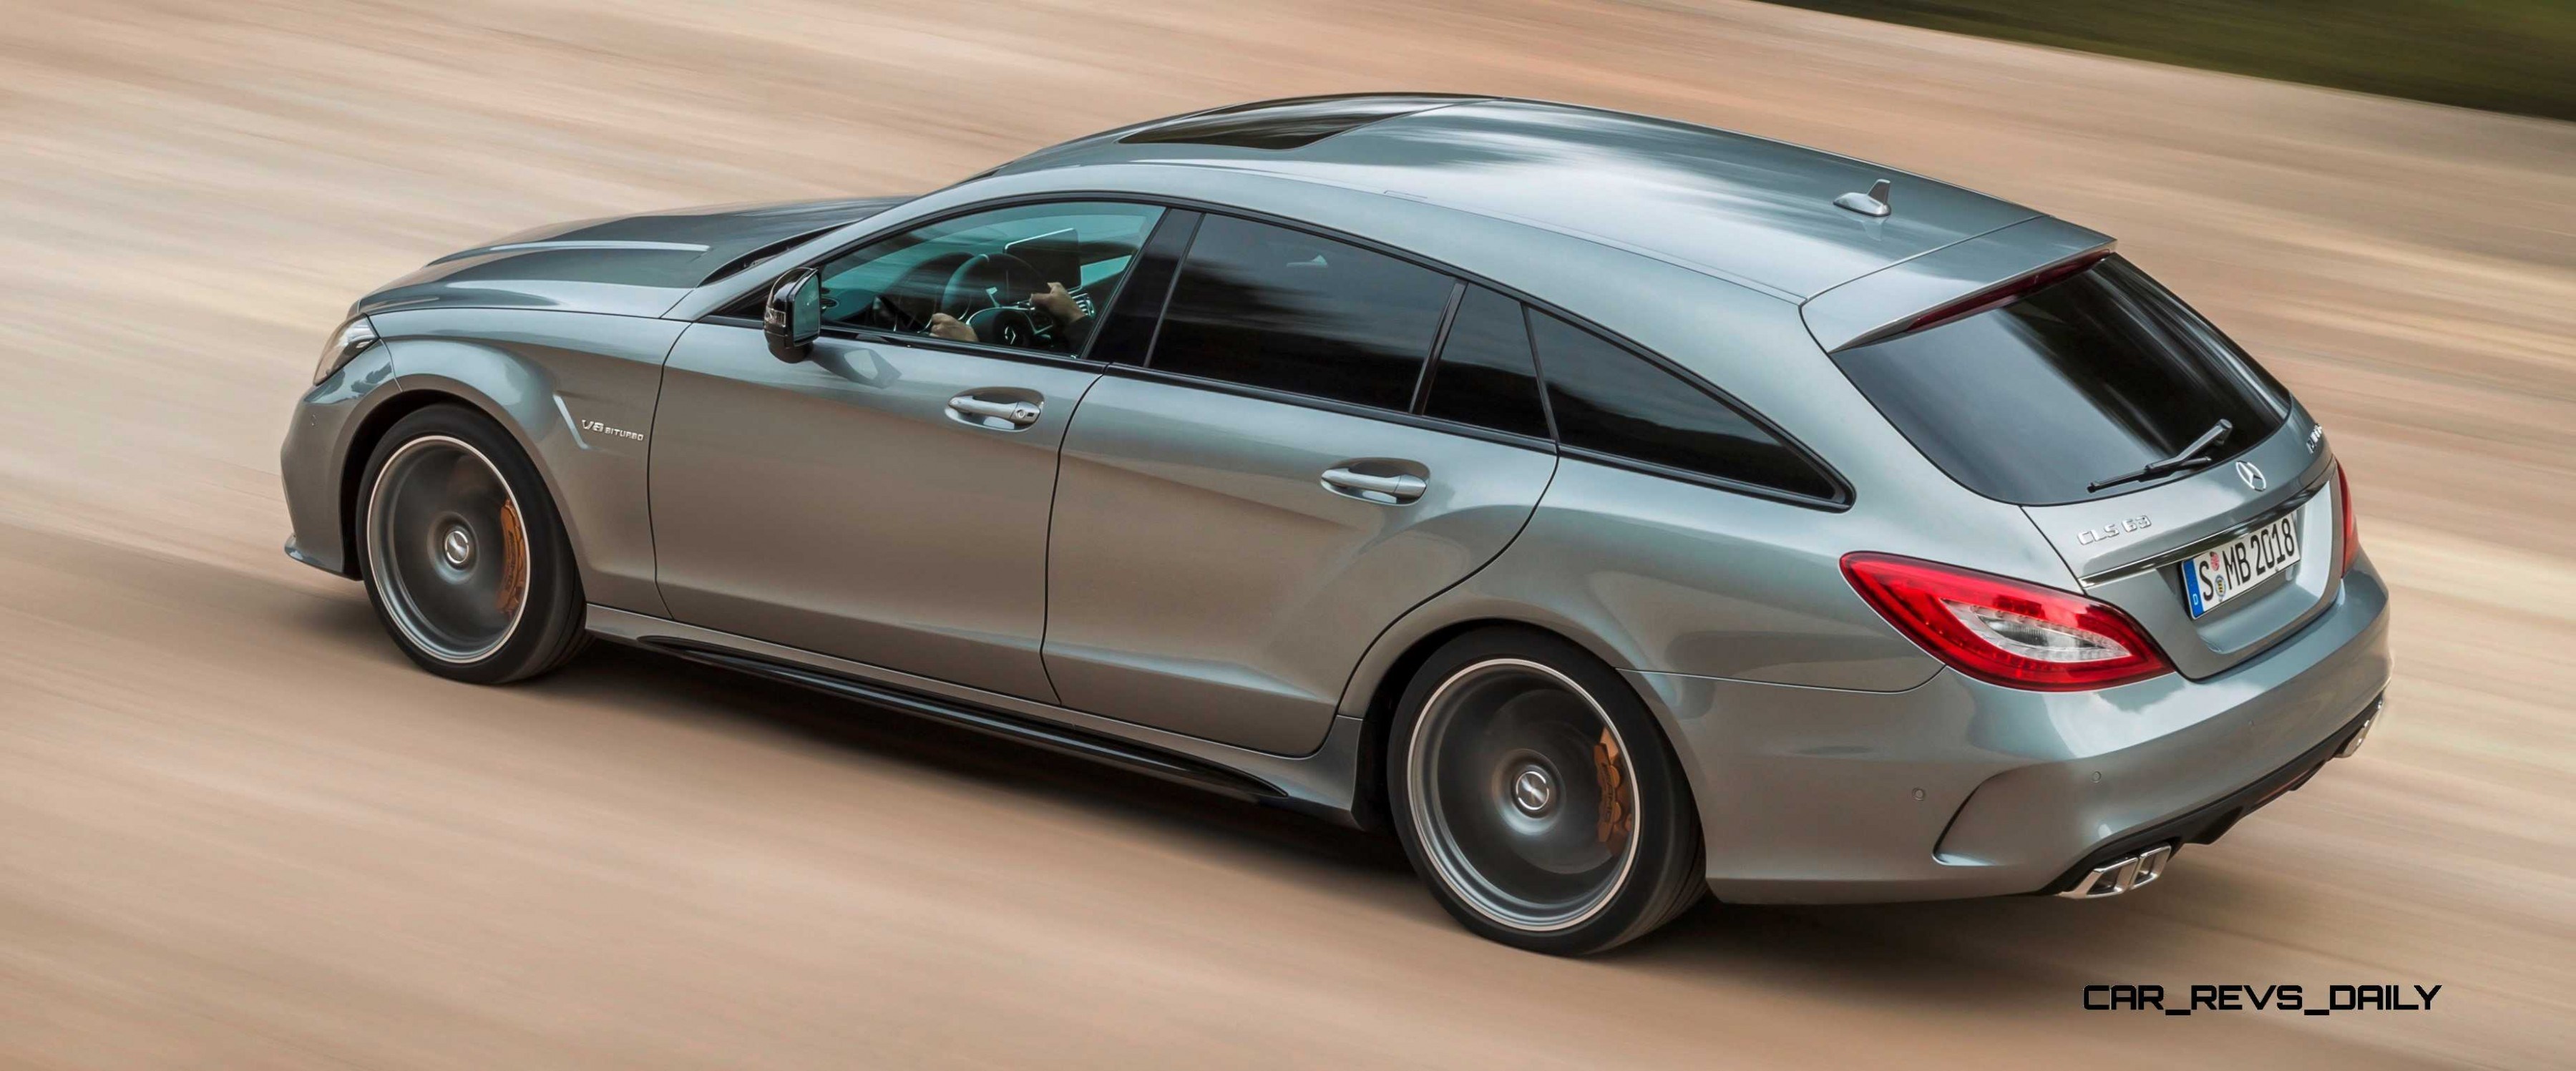 Mercedes benz cls 550 2015 bing images for Mercedes benz homepage